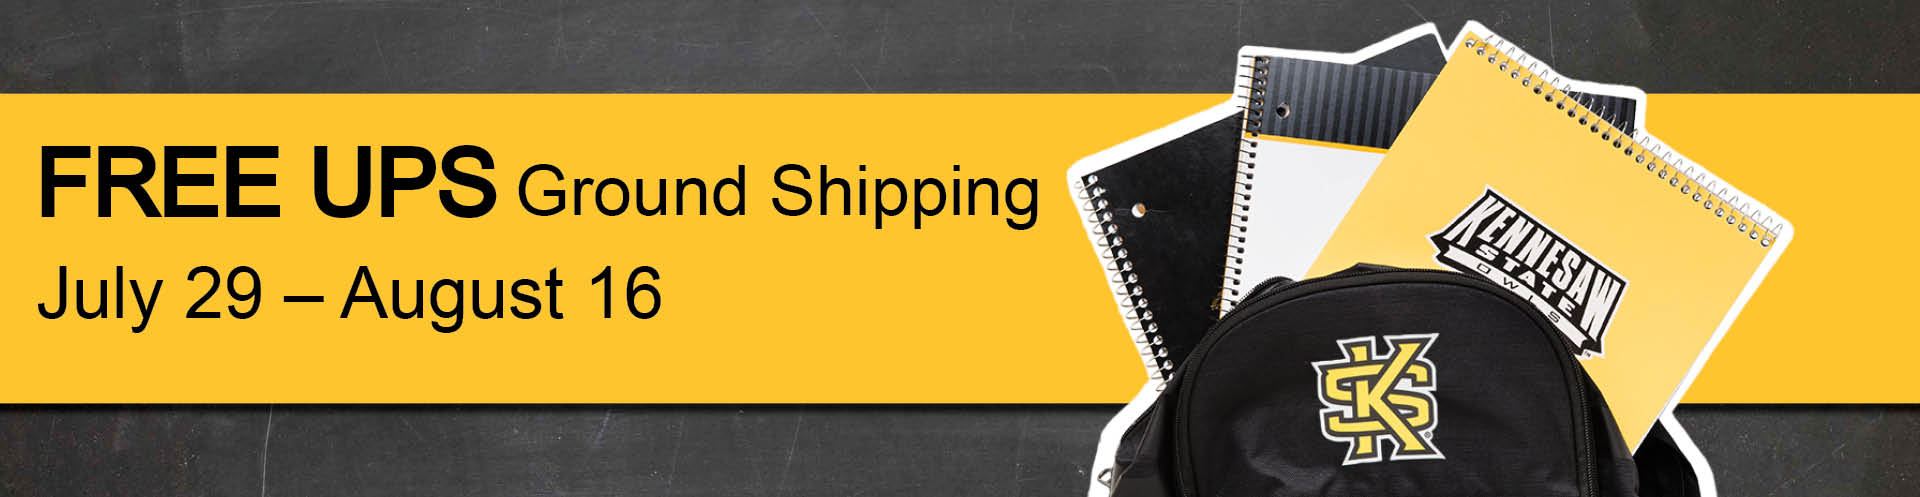 Free UPS Ground Shipping during August!